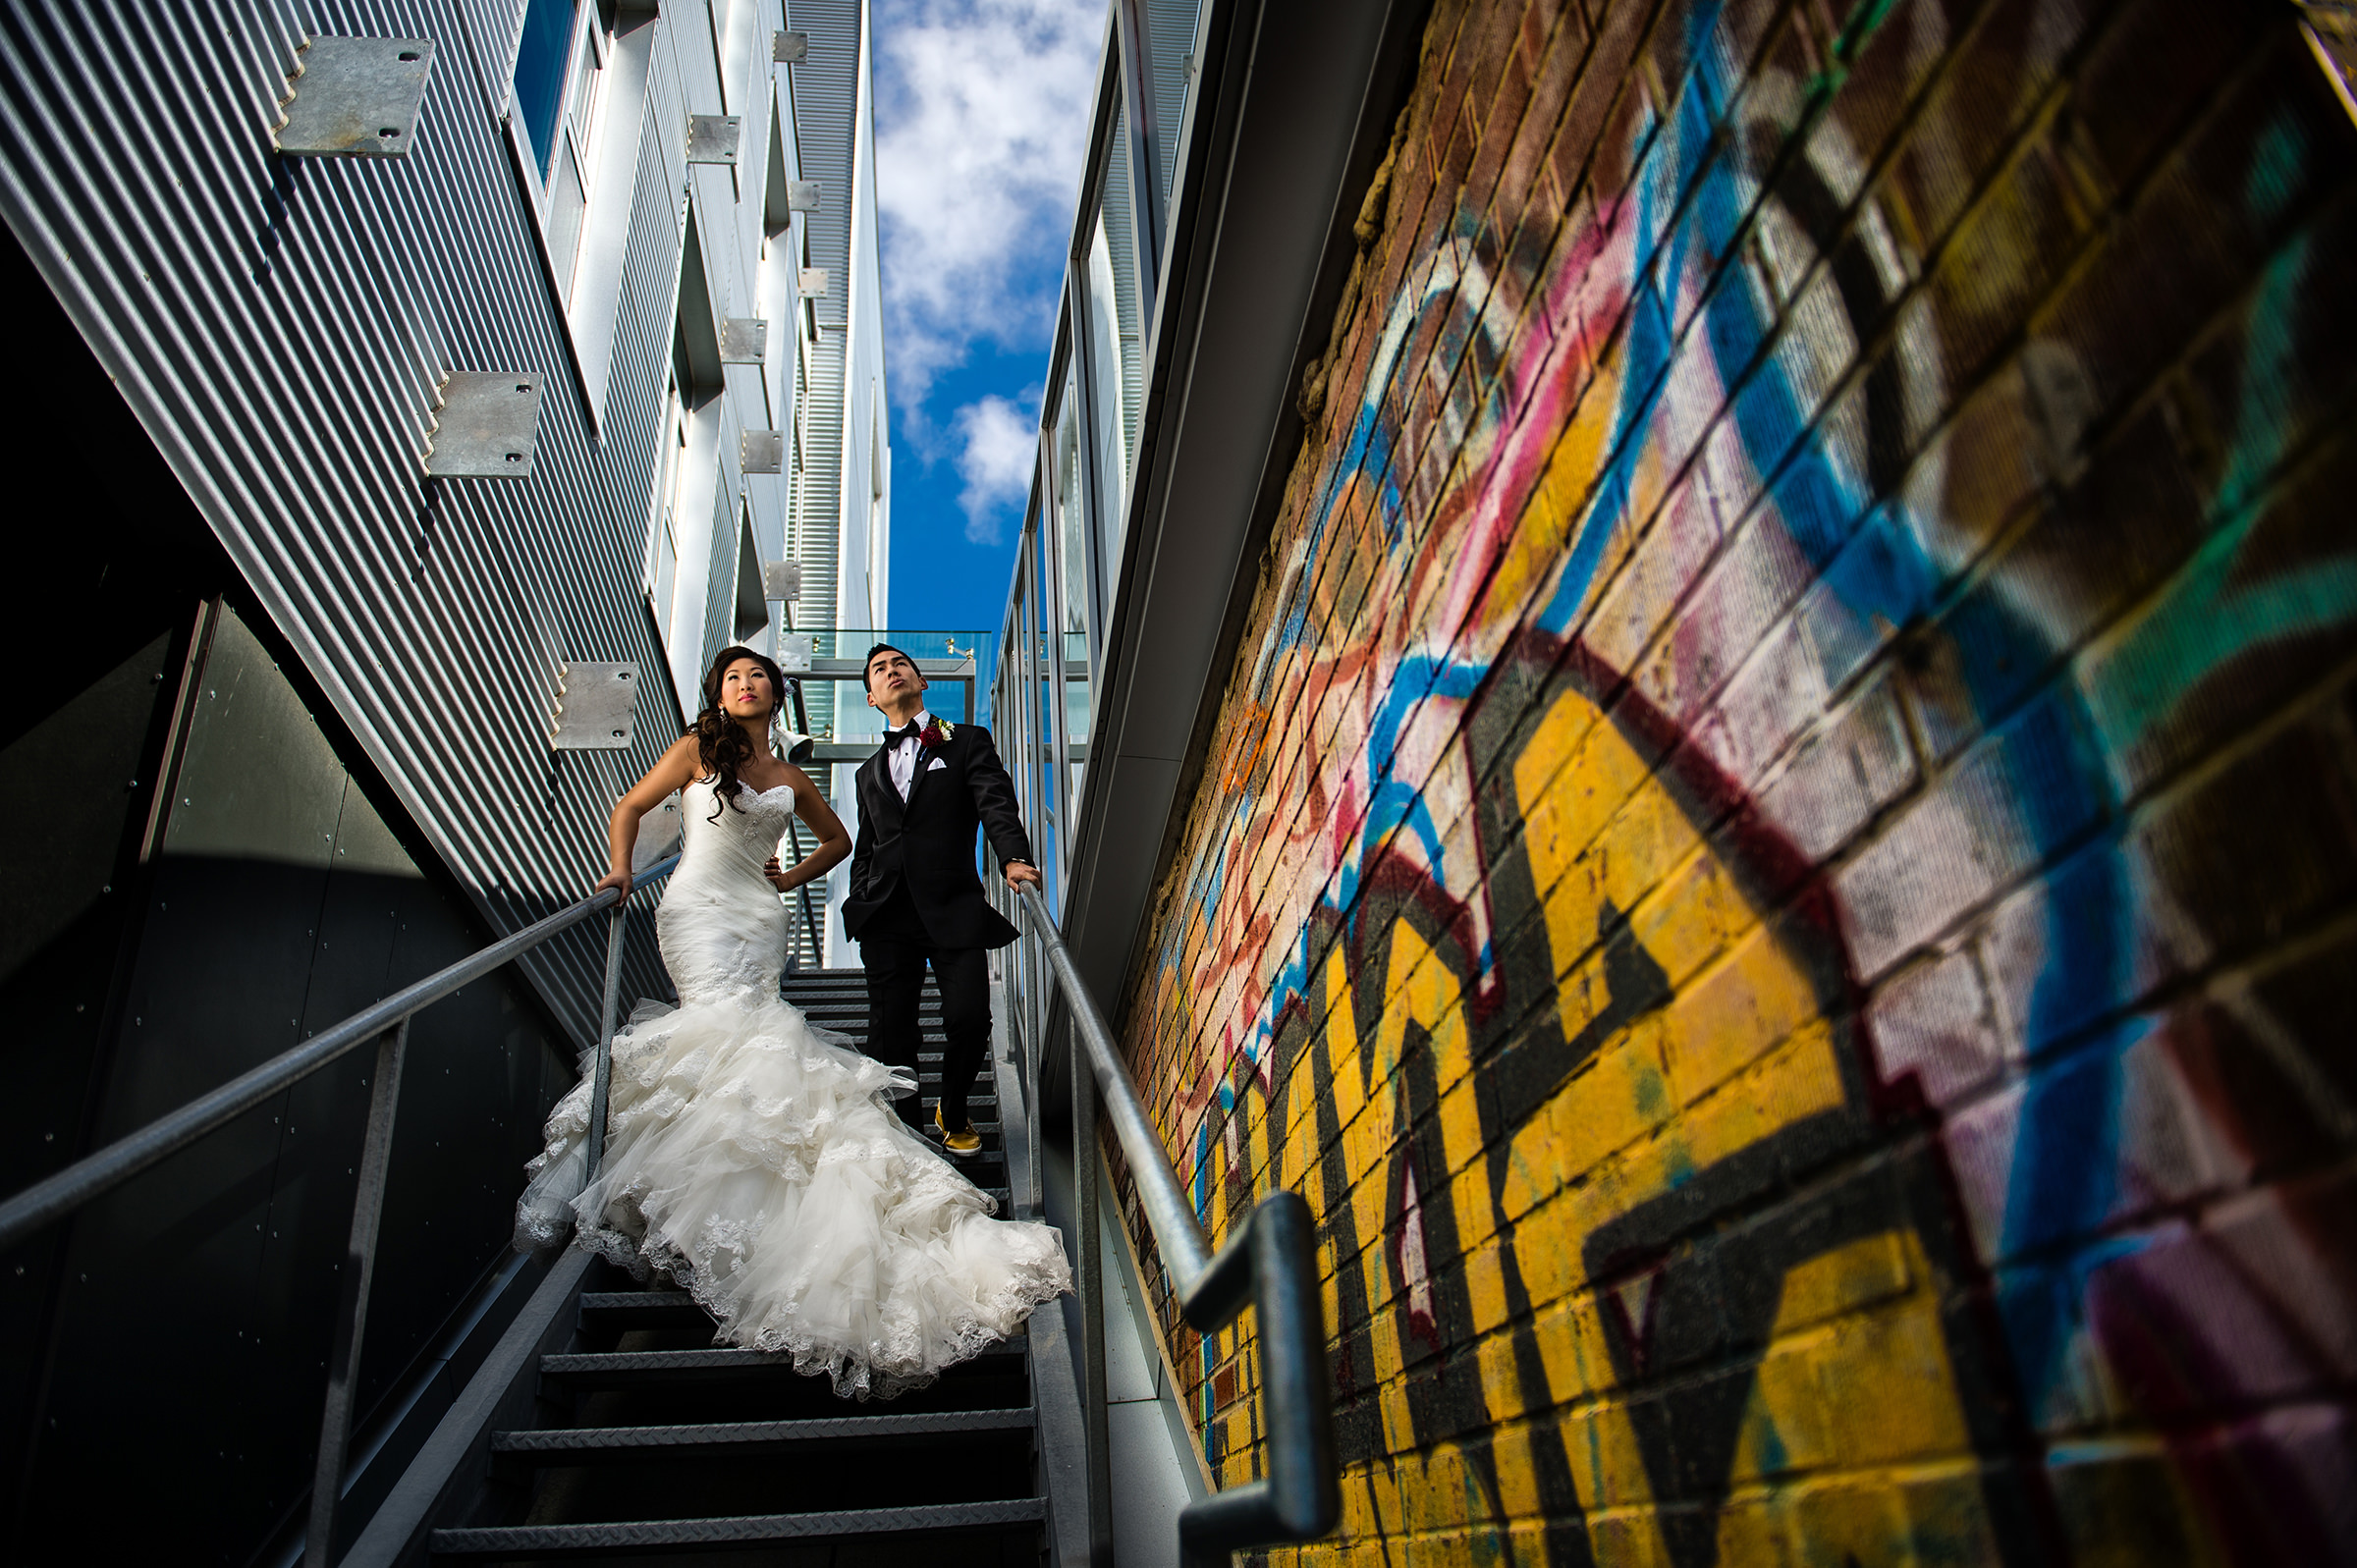 Urban wedding portrait with bride wearing trumpet ruffled dress by David & Sherry Photography